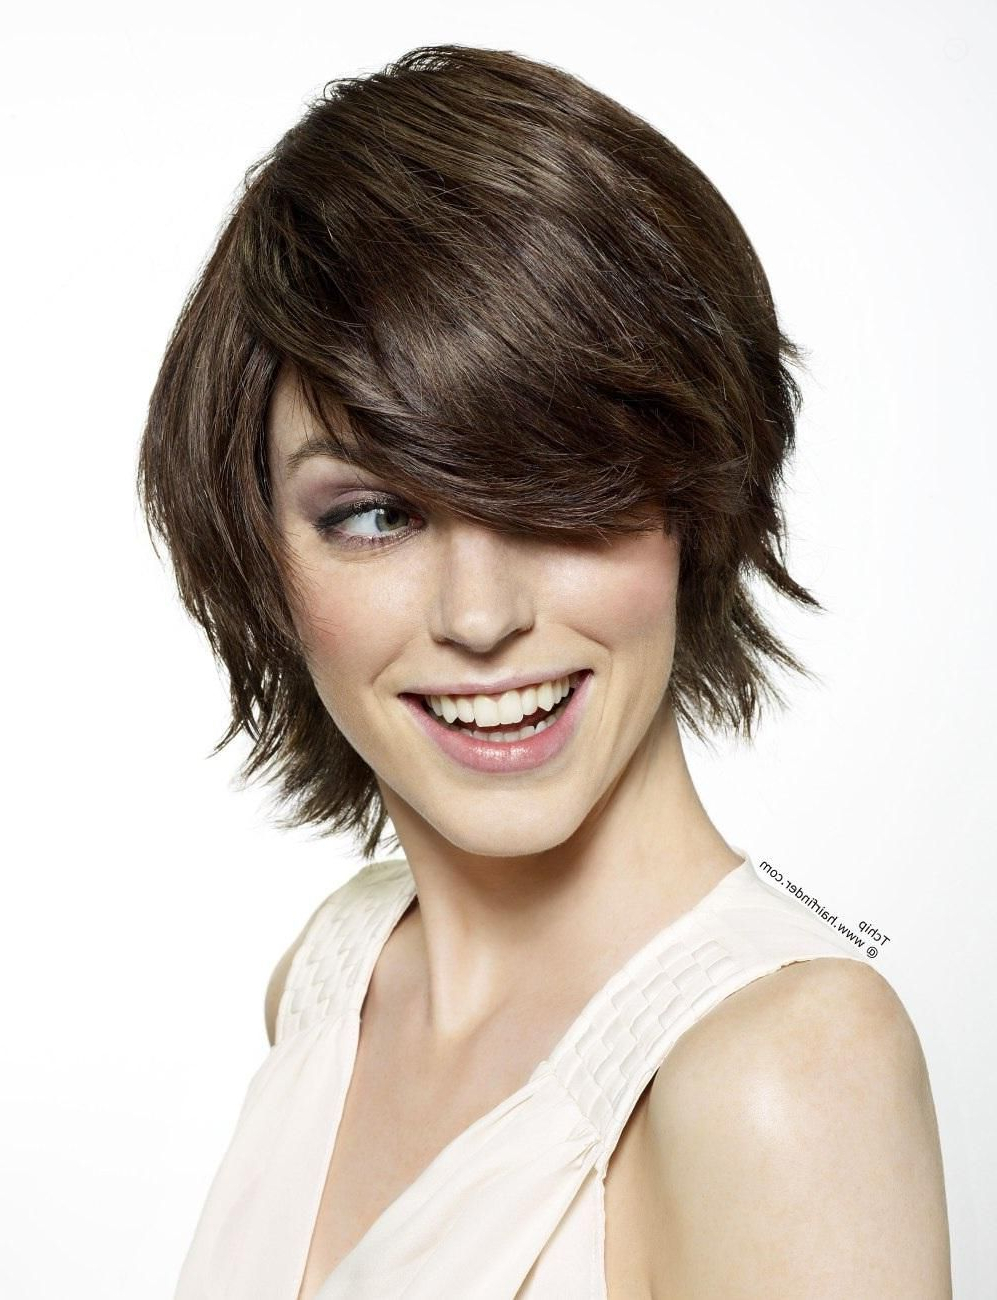 Short Hairstyles Low Maintenance | Style | Pinterest | Short Regarding Low Maintenance Short Hairstyles (View 11 of 25)